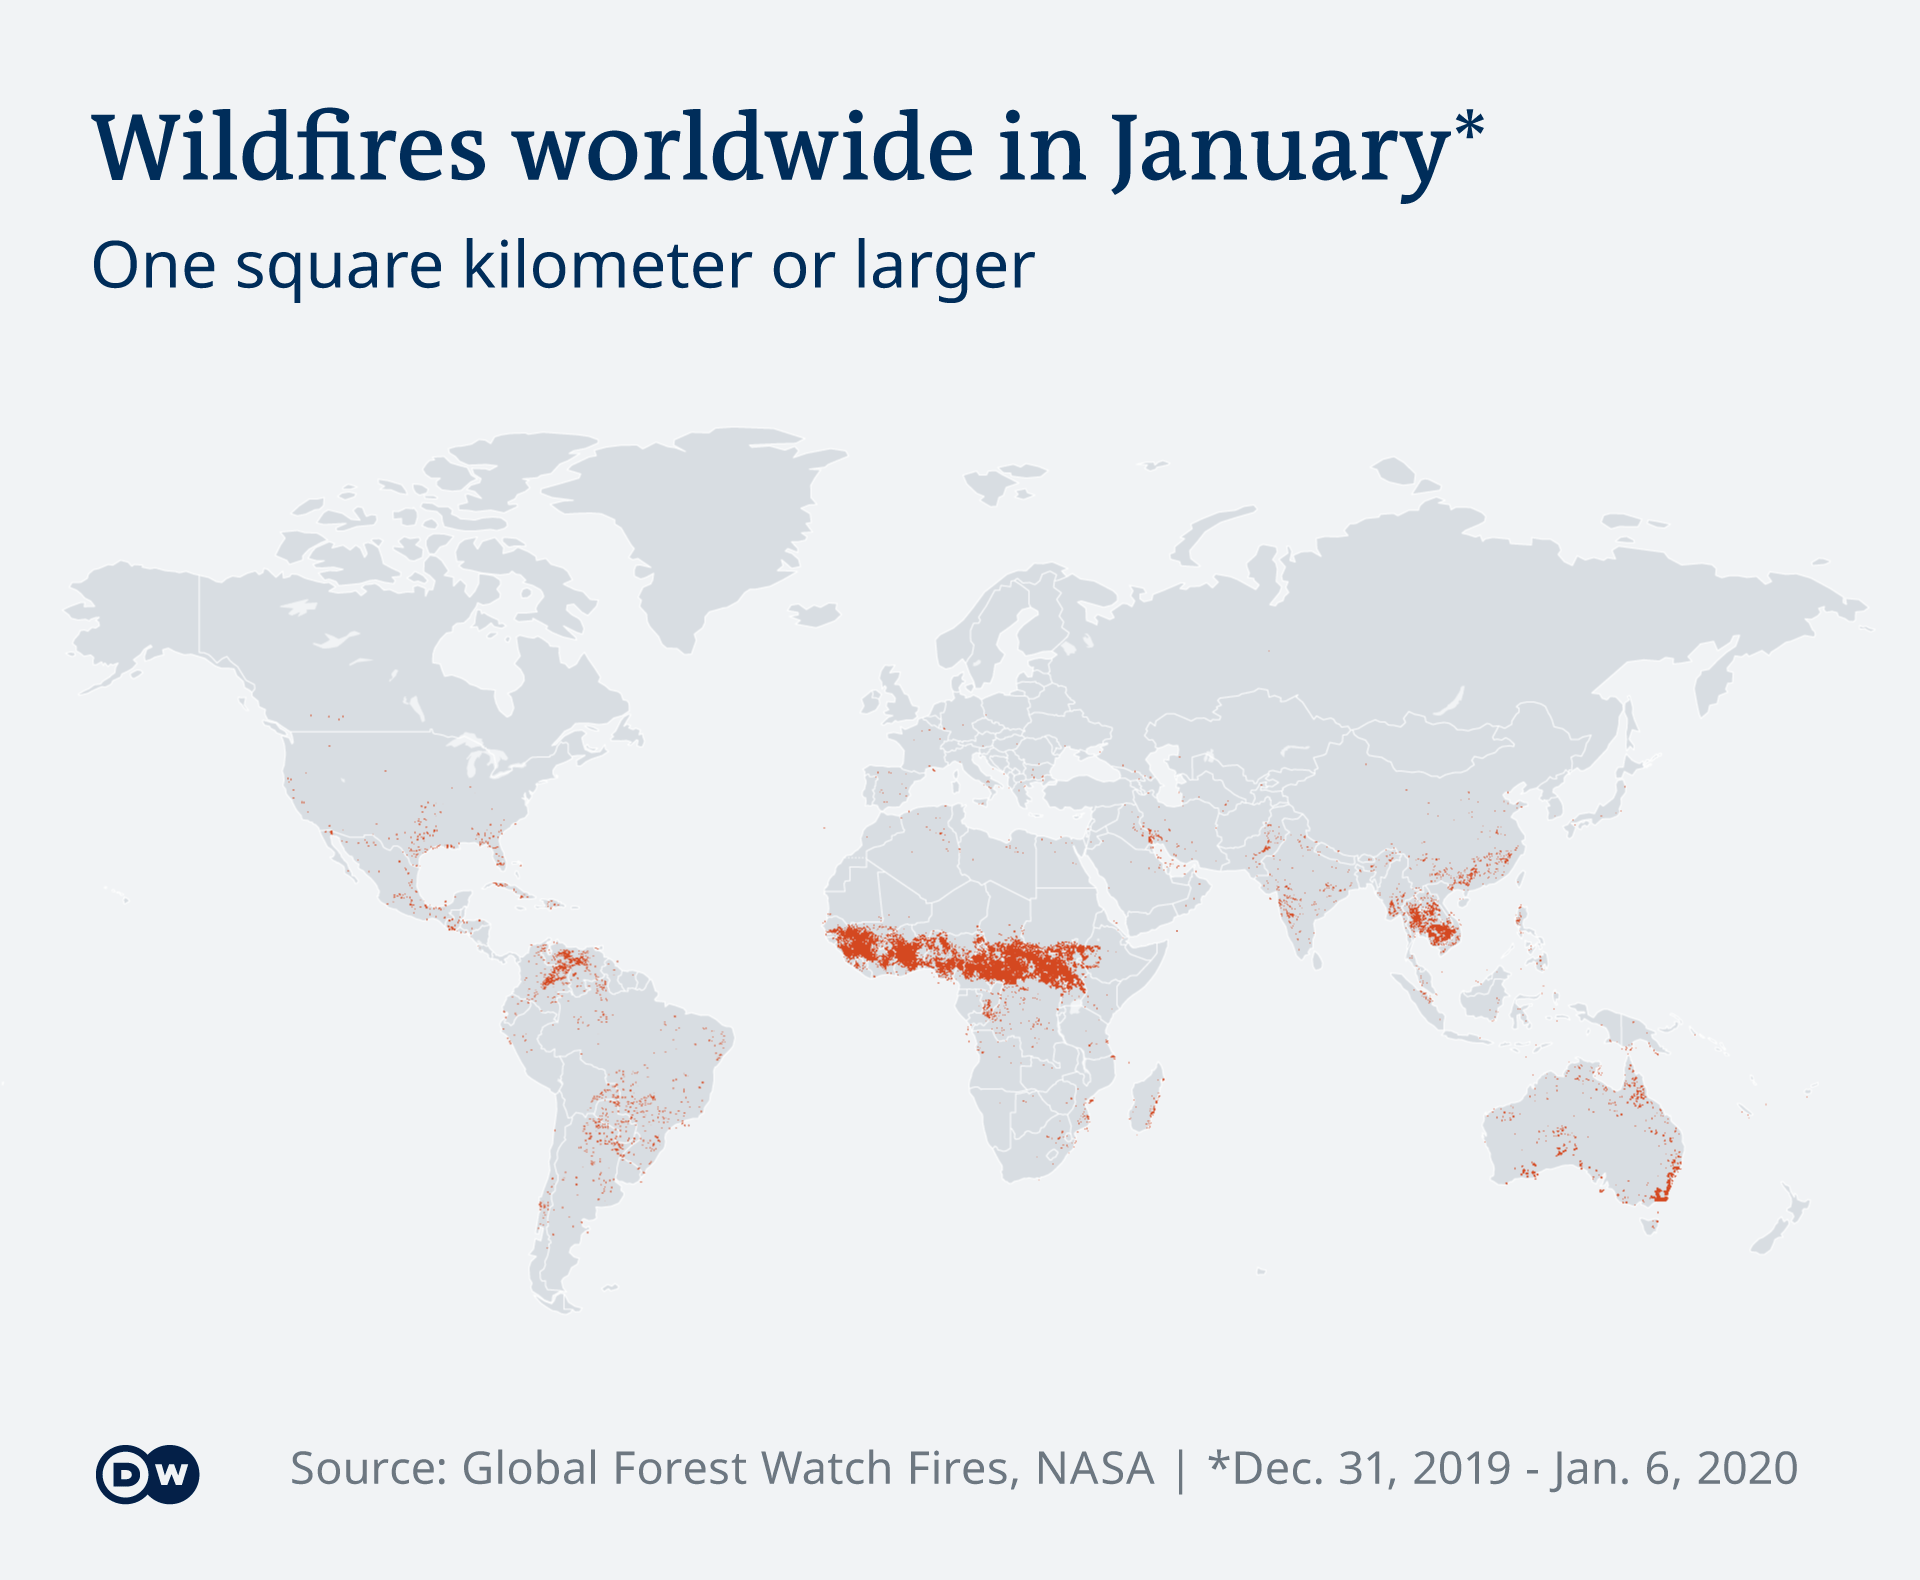 Graphic of wildfires across the globe in the first month of 2020